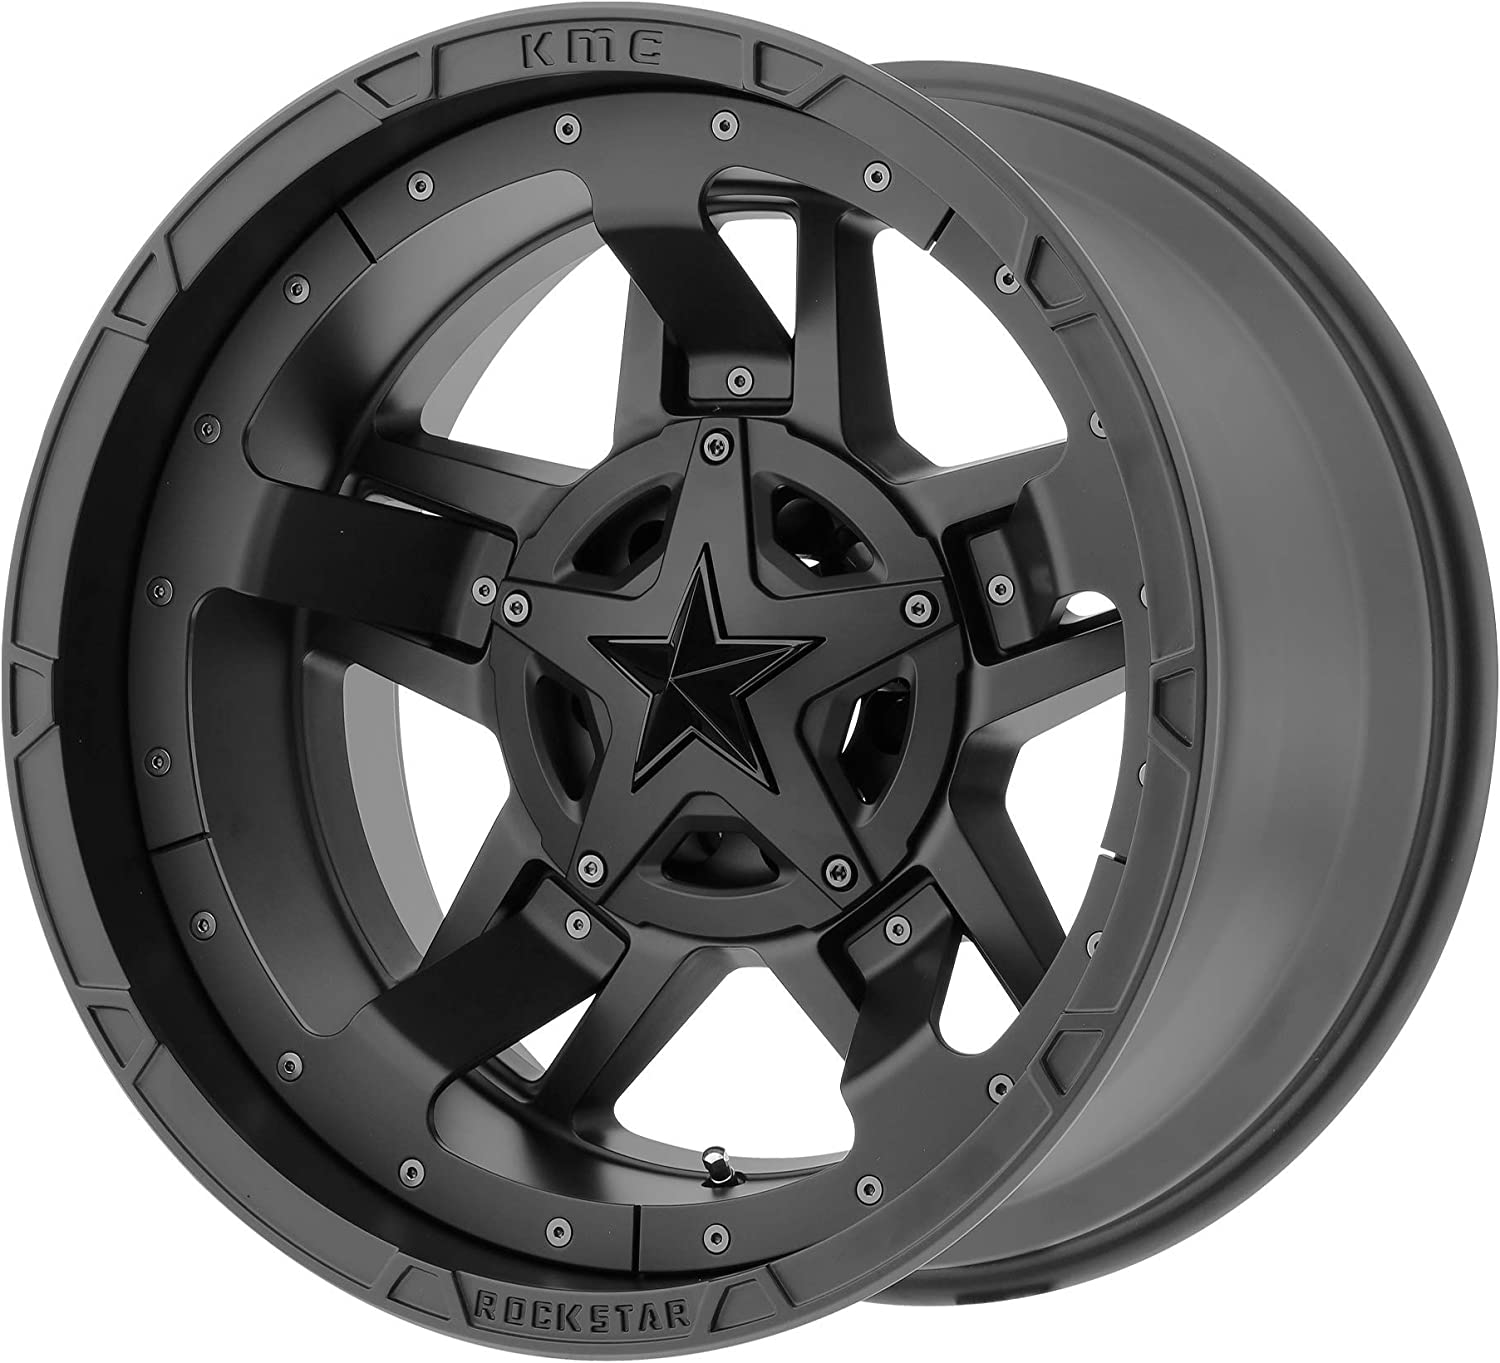 List price XD SERIES BY KMC Beauty products WHEELS RS3 MATTE 6x114.30 17x8 BLACK